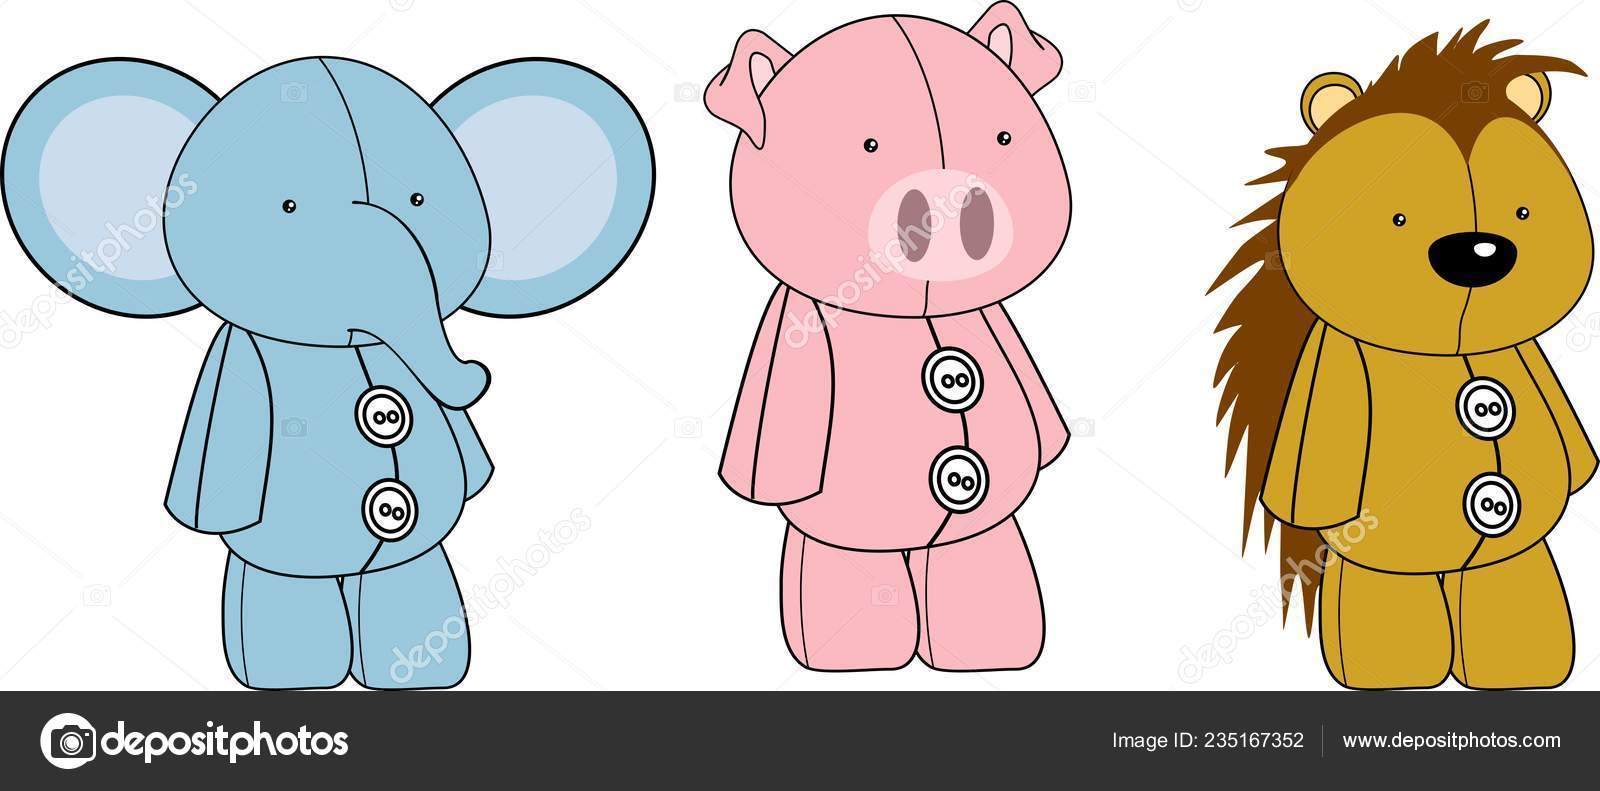 Image of: Cream Cone Kawaii Animals Plush Toy Cartoons Collection Set In Vector Format Very Easy To Edit Vector By Hayashix23 Depositphotos Kawaii Animals Plush Toy Cartoons Collection Set Vector Format Very